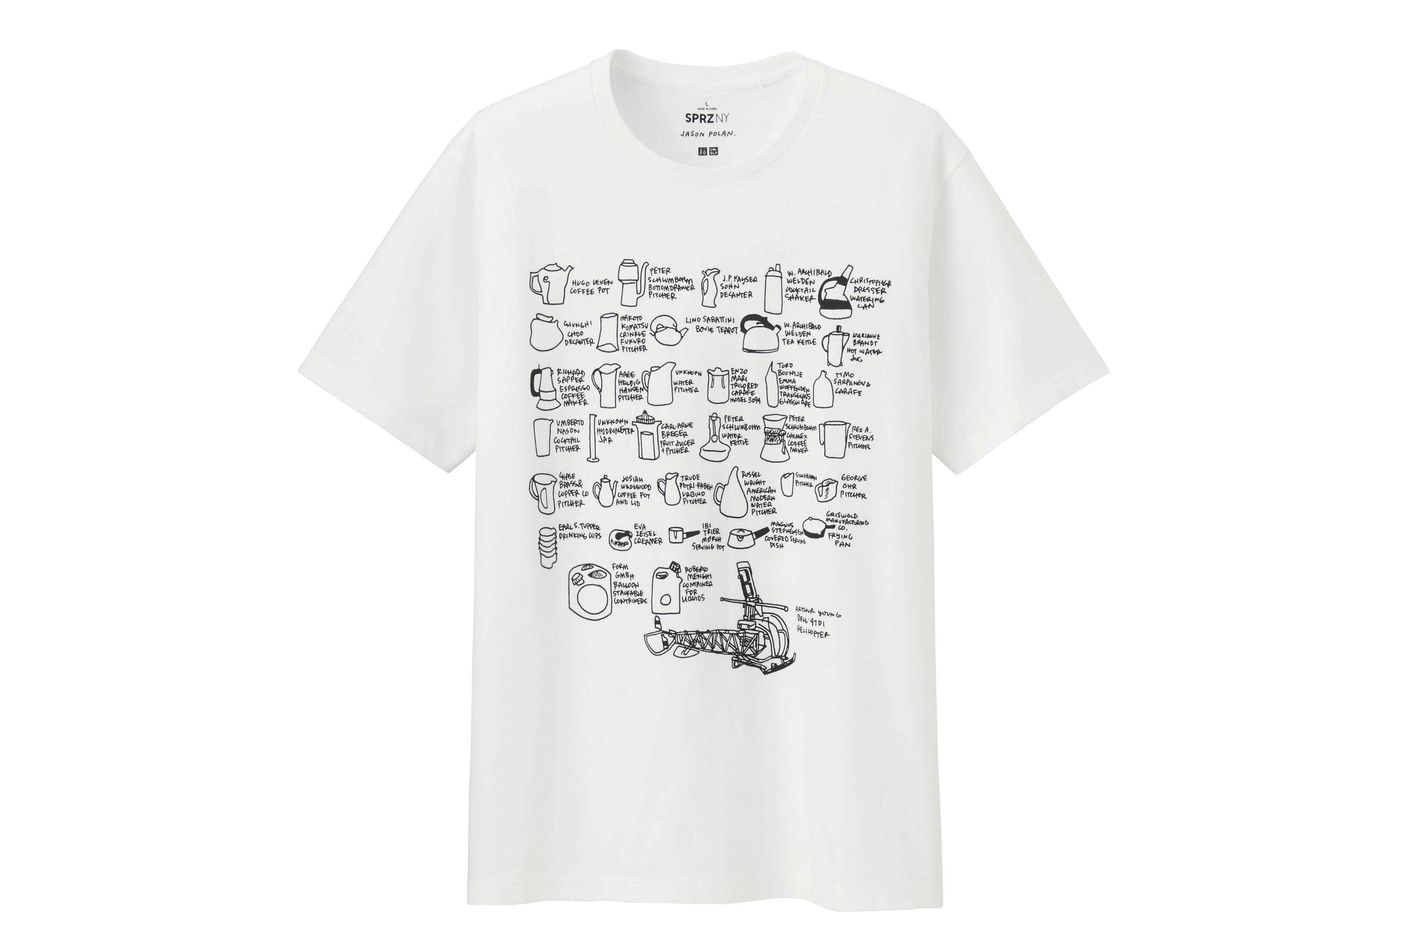 Jason Polan for Uniqlo T-Shirt